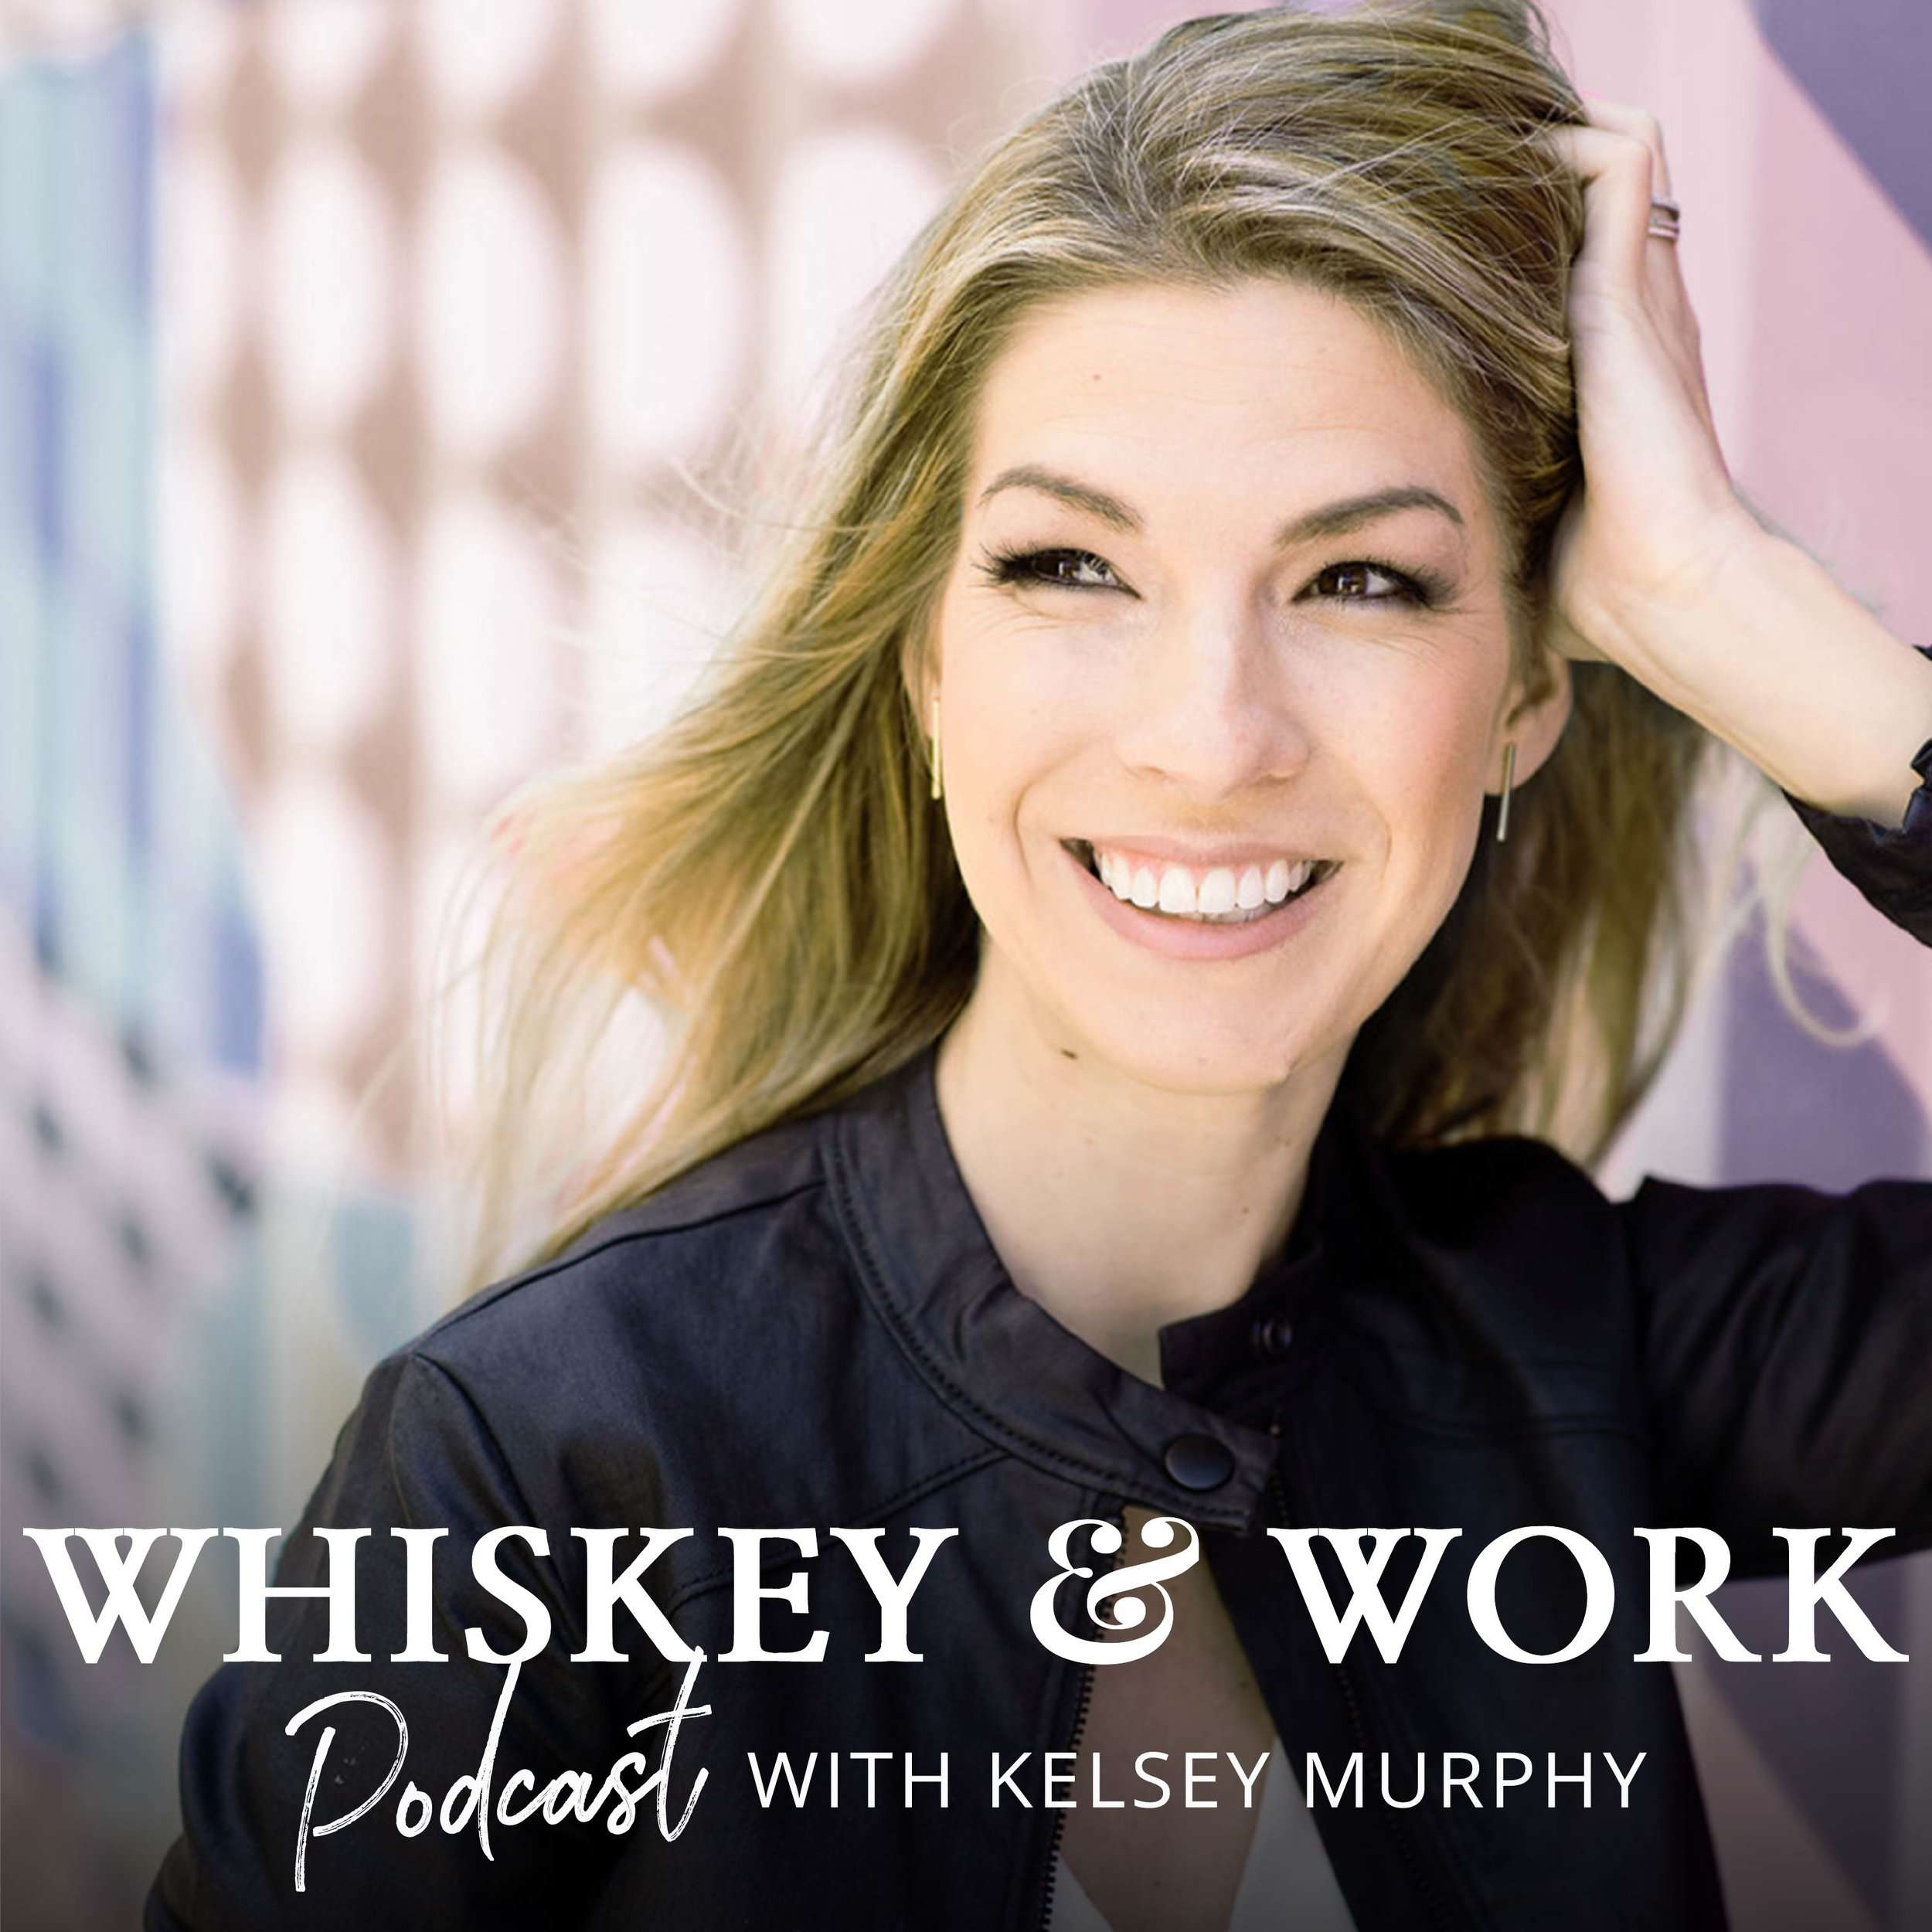 Whiskey and Work Podcast Kelsey Murphy.jpg